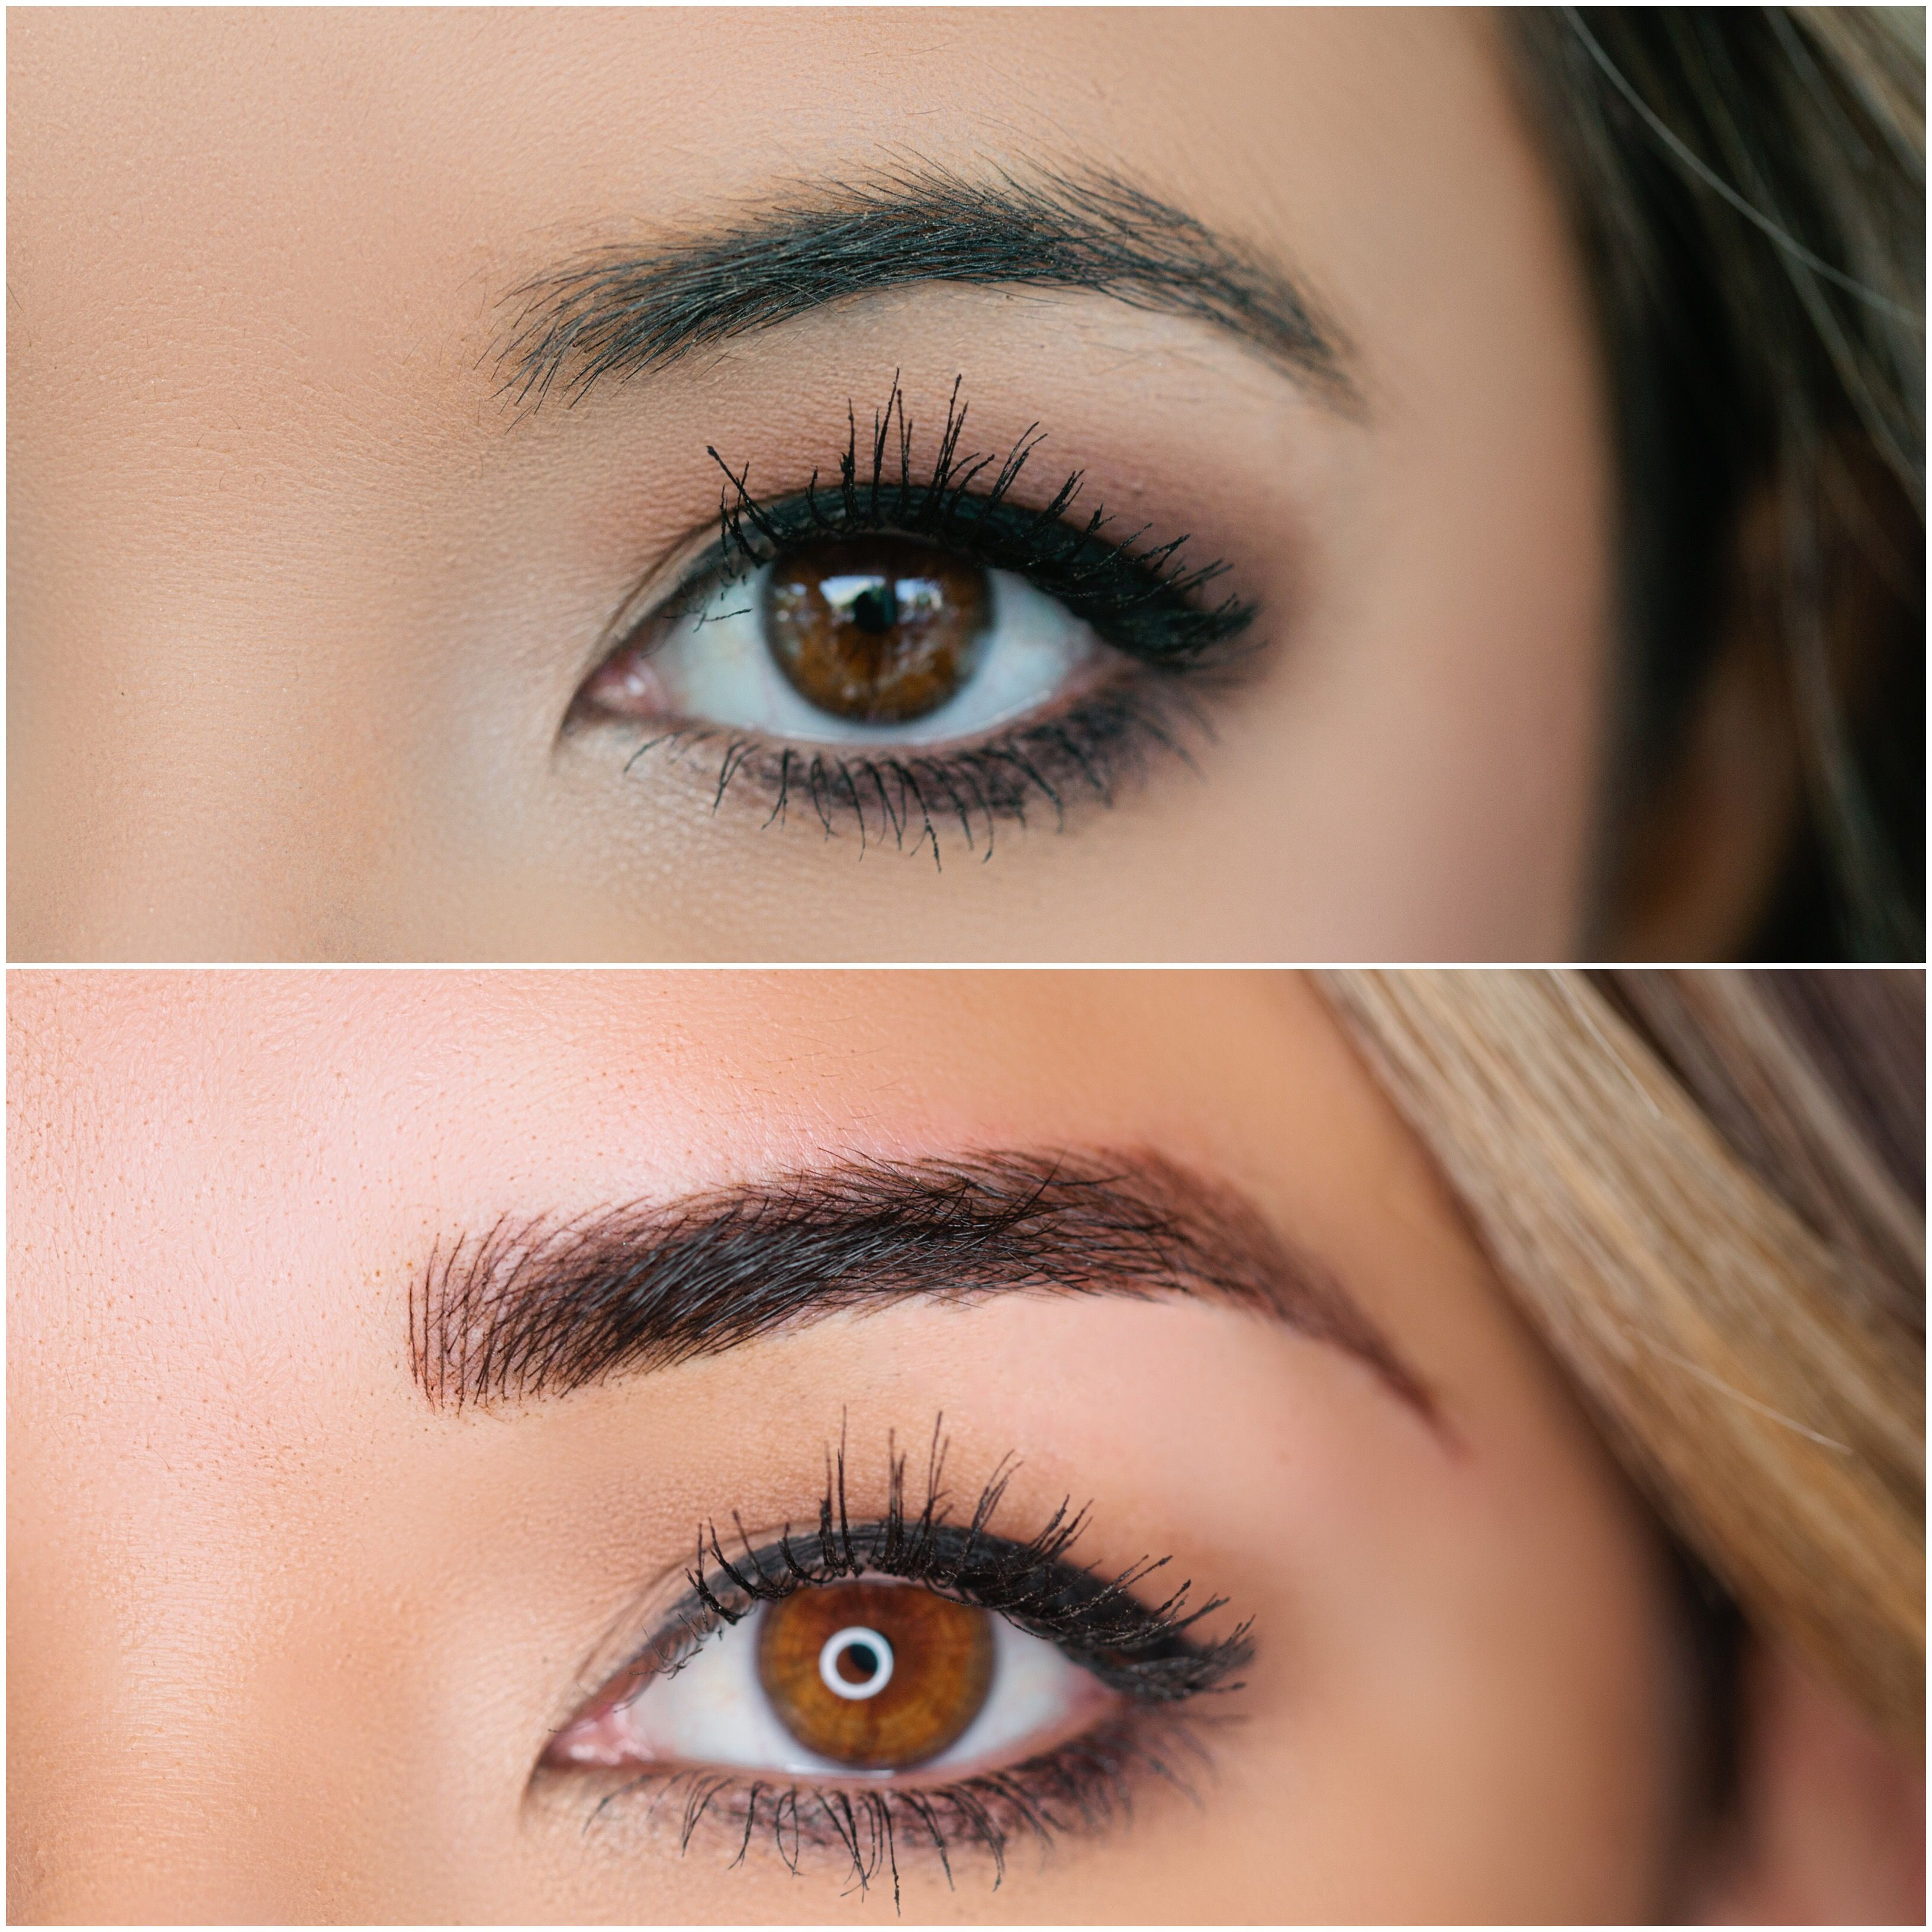 microblading before and after Best eyebrow products